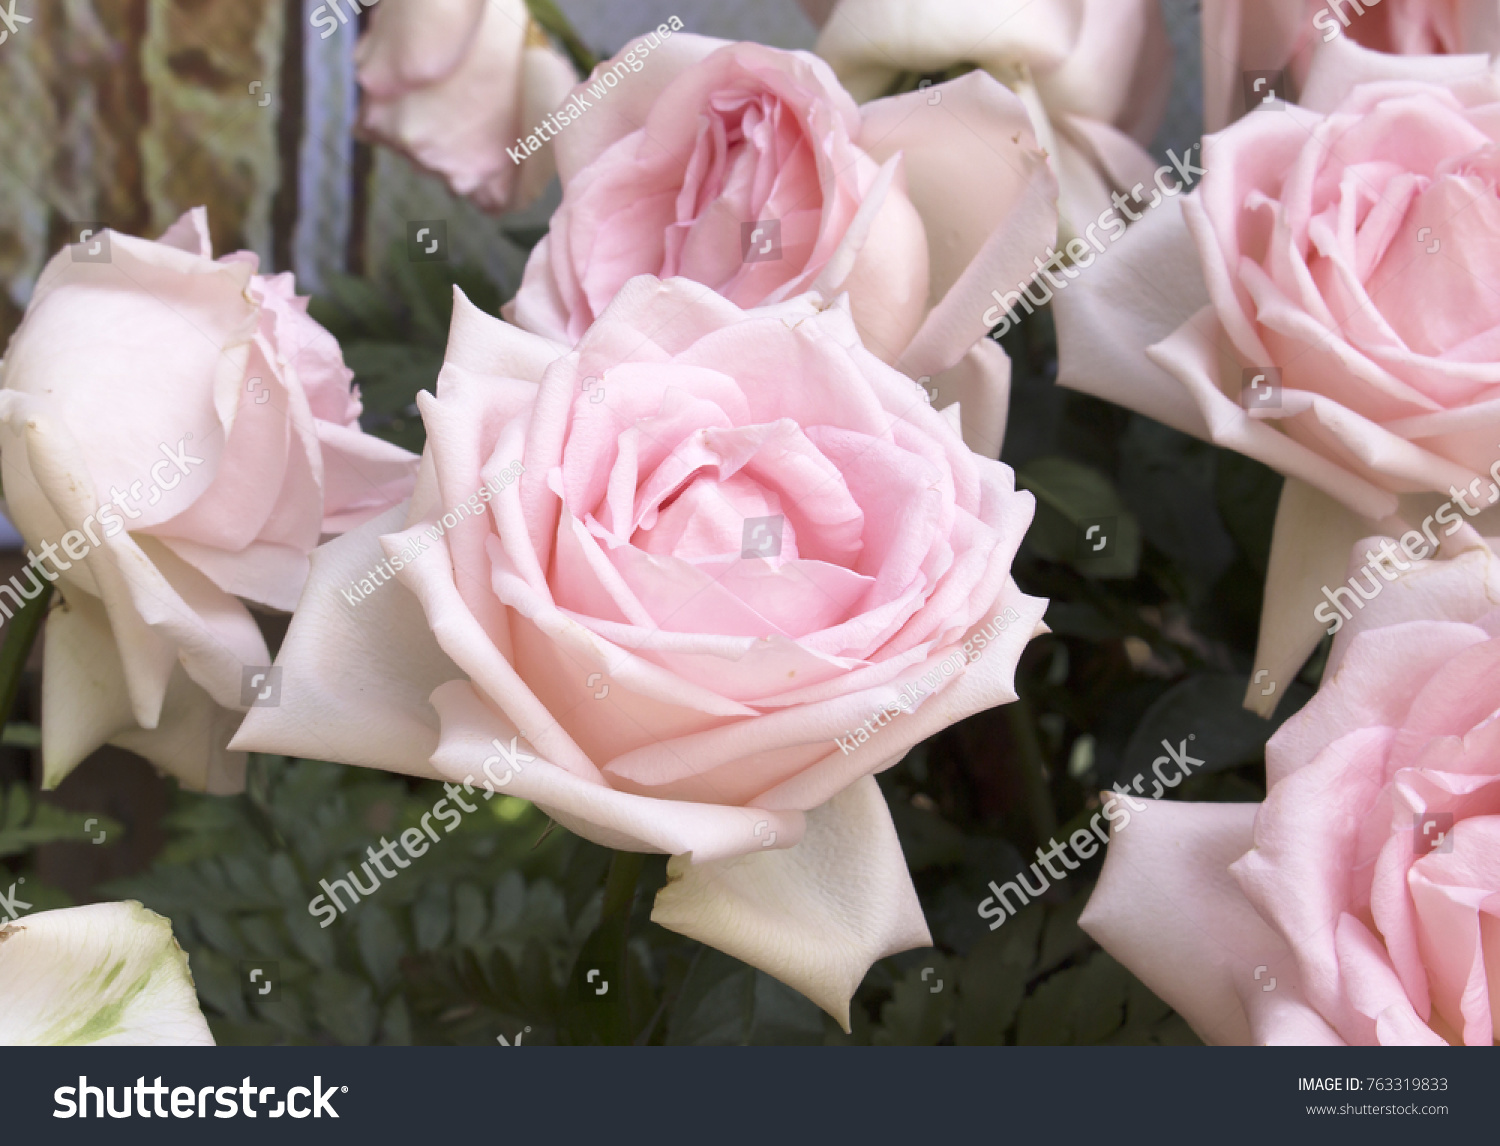 Roses popular flower that grows very stock photo edit now roses is a popular flower that grows very much because it is a beautiful fragrant izmirmasajfo